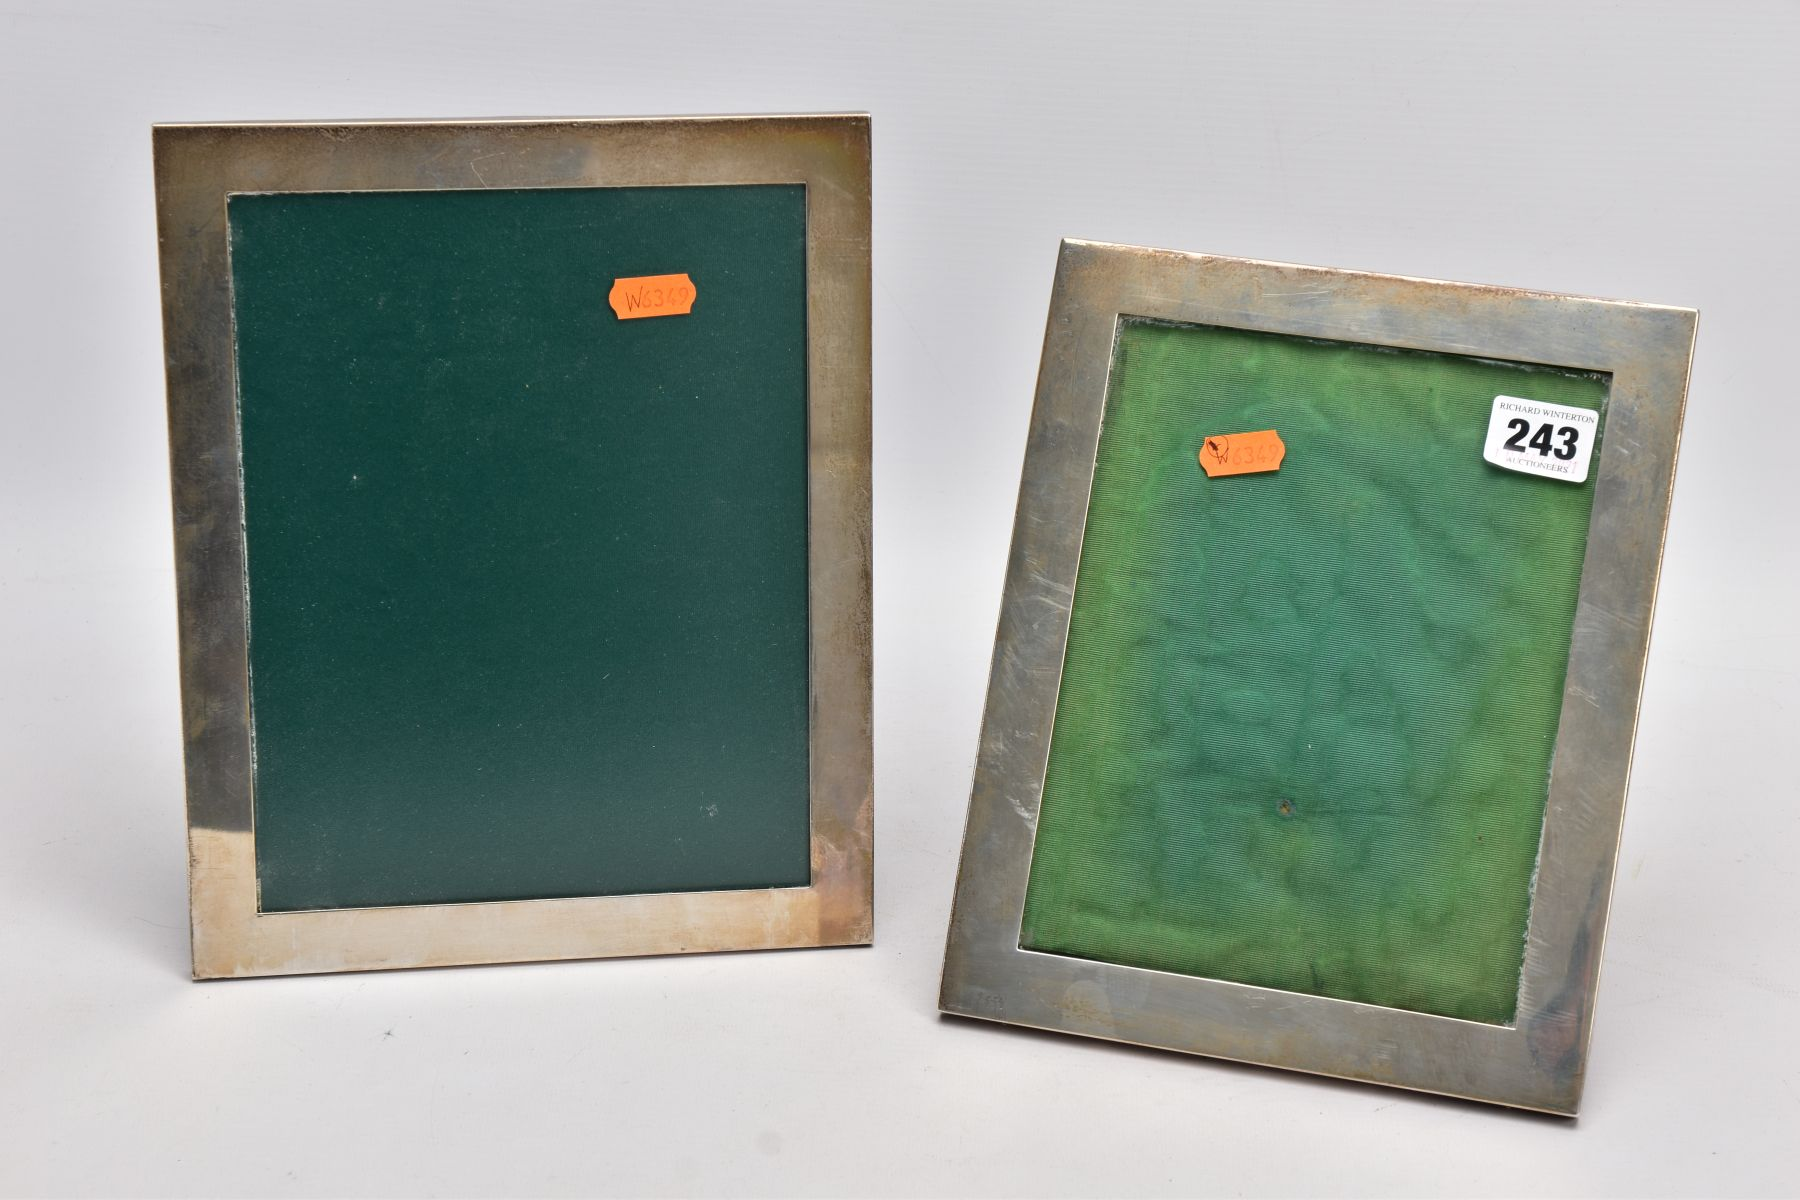 TWO SILVER PHOTO FRAMES, each of a rectangular form, the largest measuring approximately 26cm x